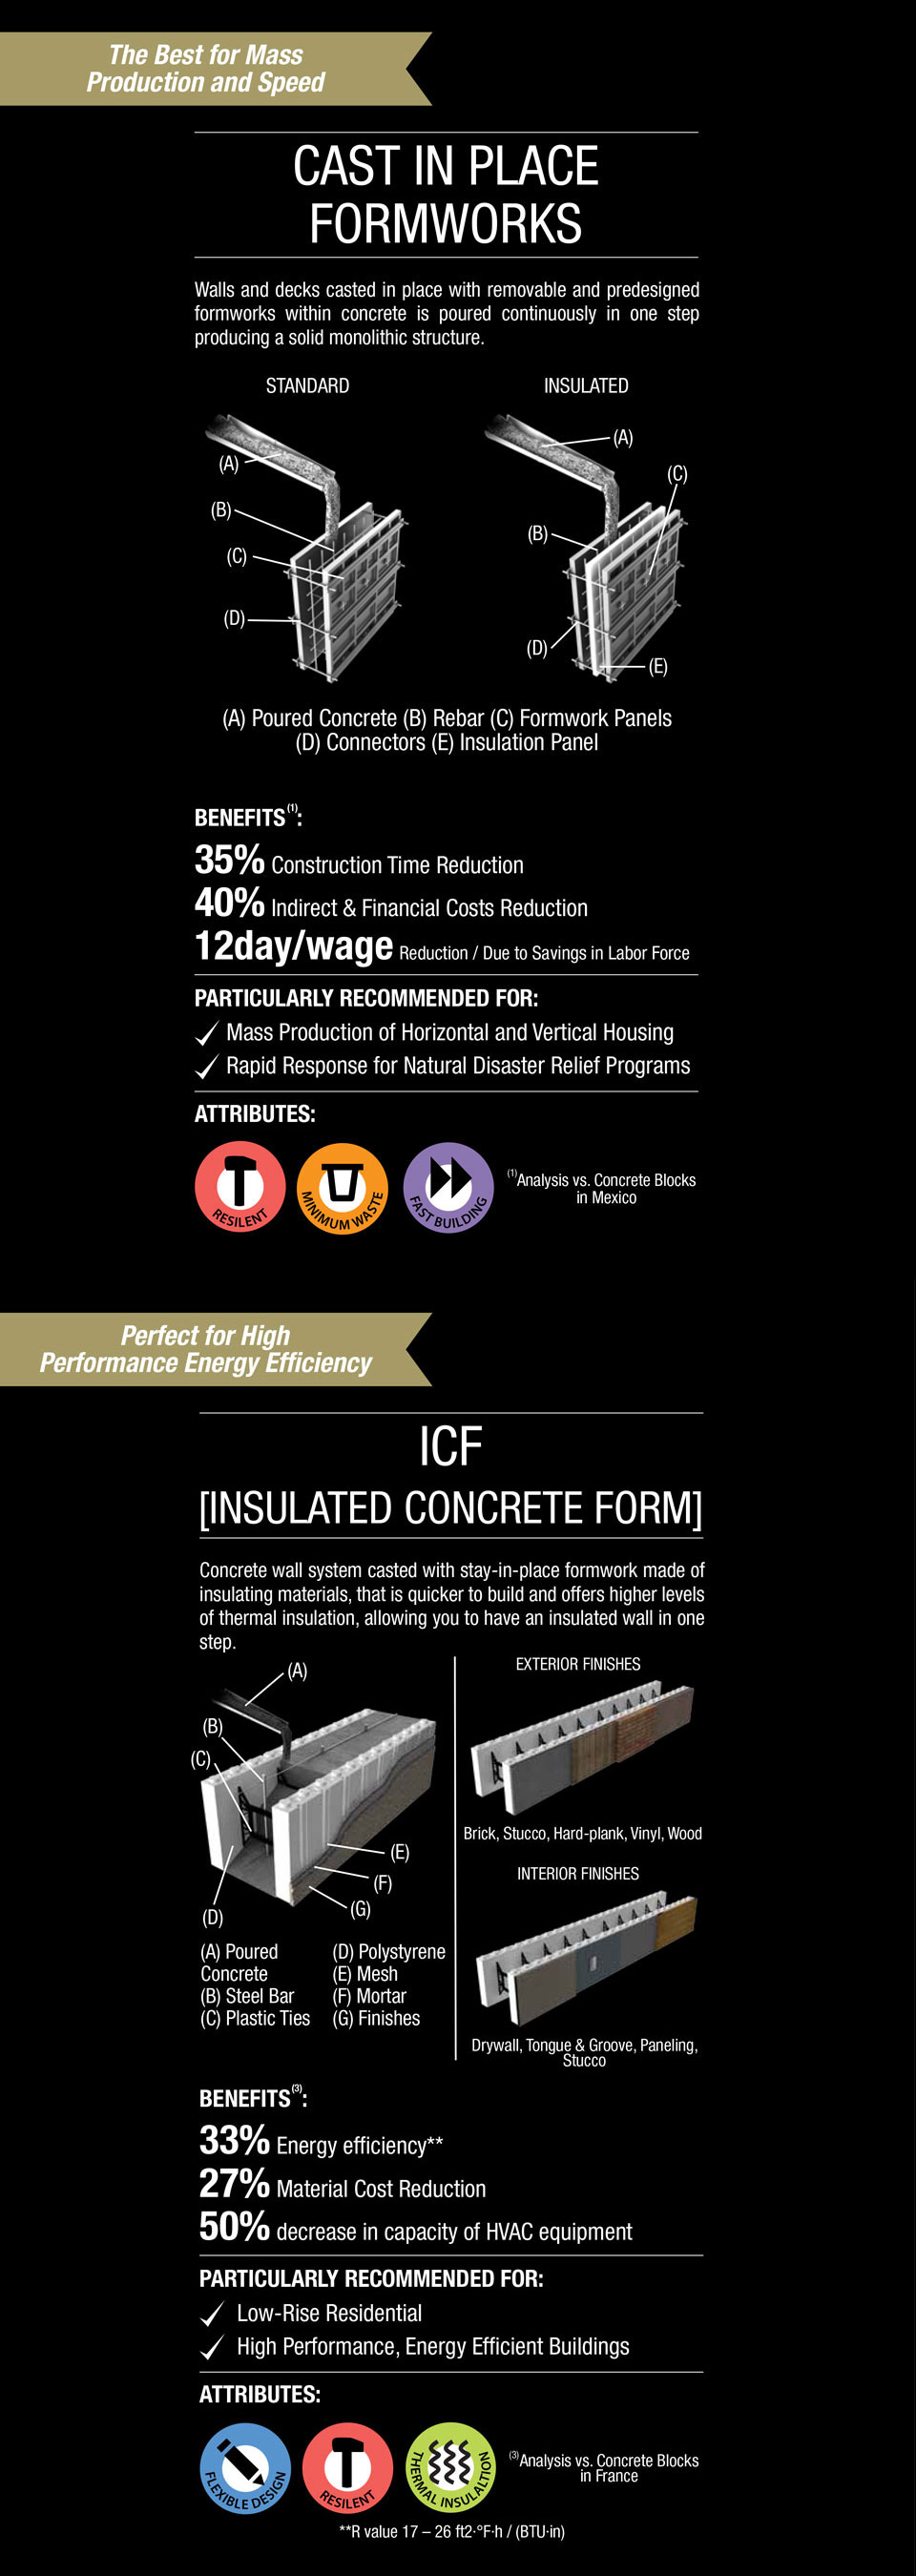 An image that describes the benefits and attributes of the cast and of the insulated concrete form.